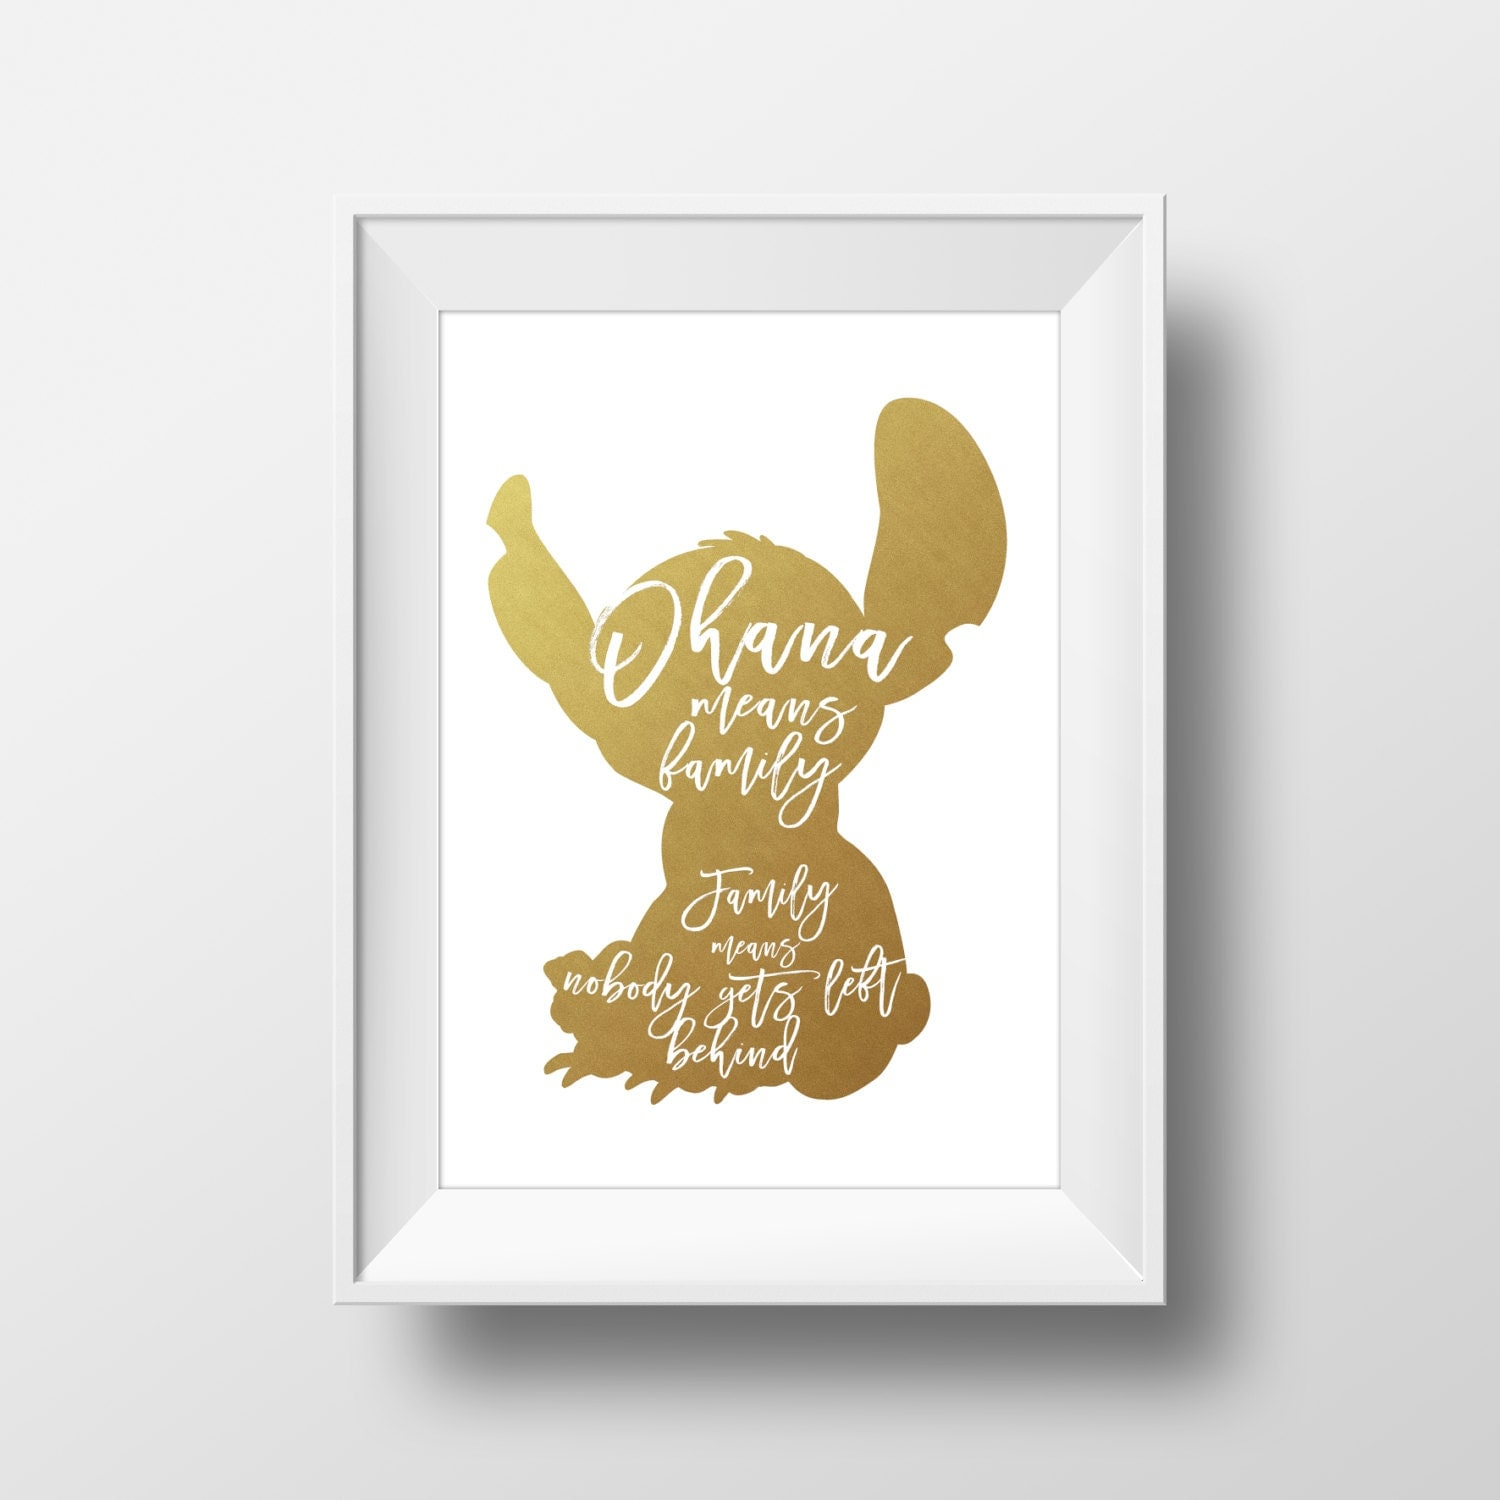 Wall Art Quotes Disney : Wall art disney print stitch goldlilo and stitchdisney